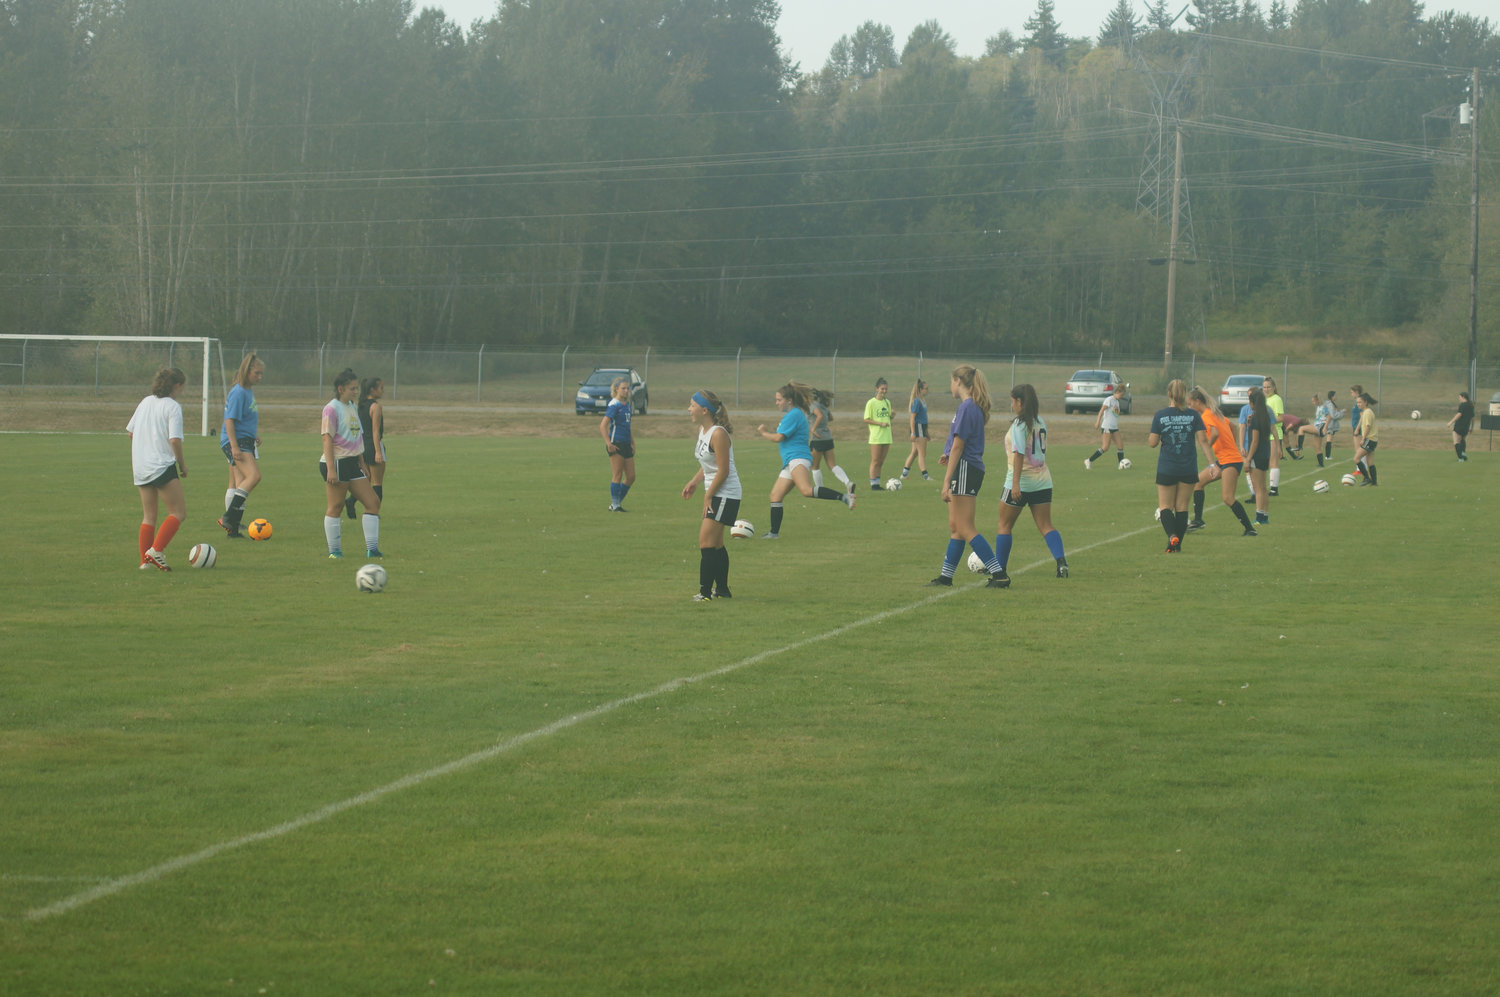 Blaine girls soccer teams warm up before practice on August 30. Thirty-one signed up to play soccer at Blaine High School this season, the biggest turnout in at least three years.